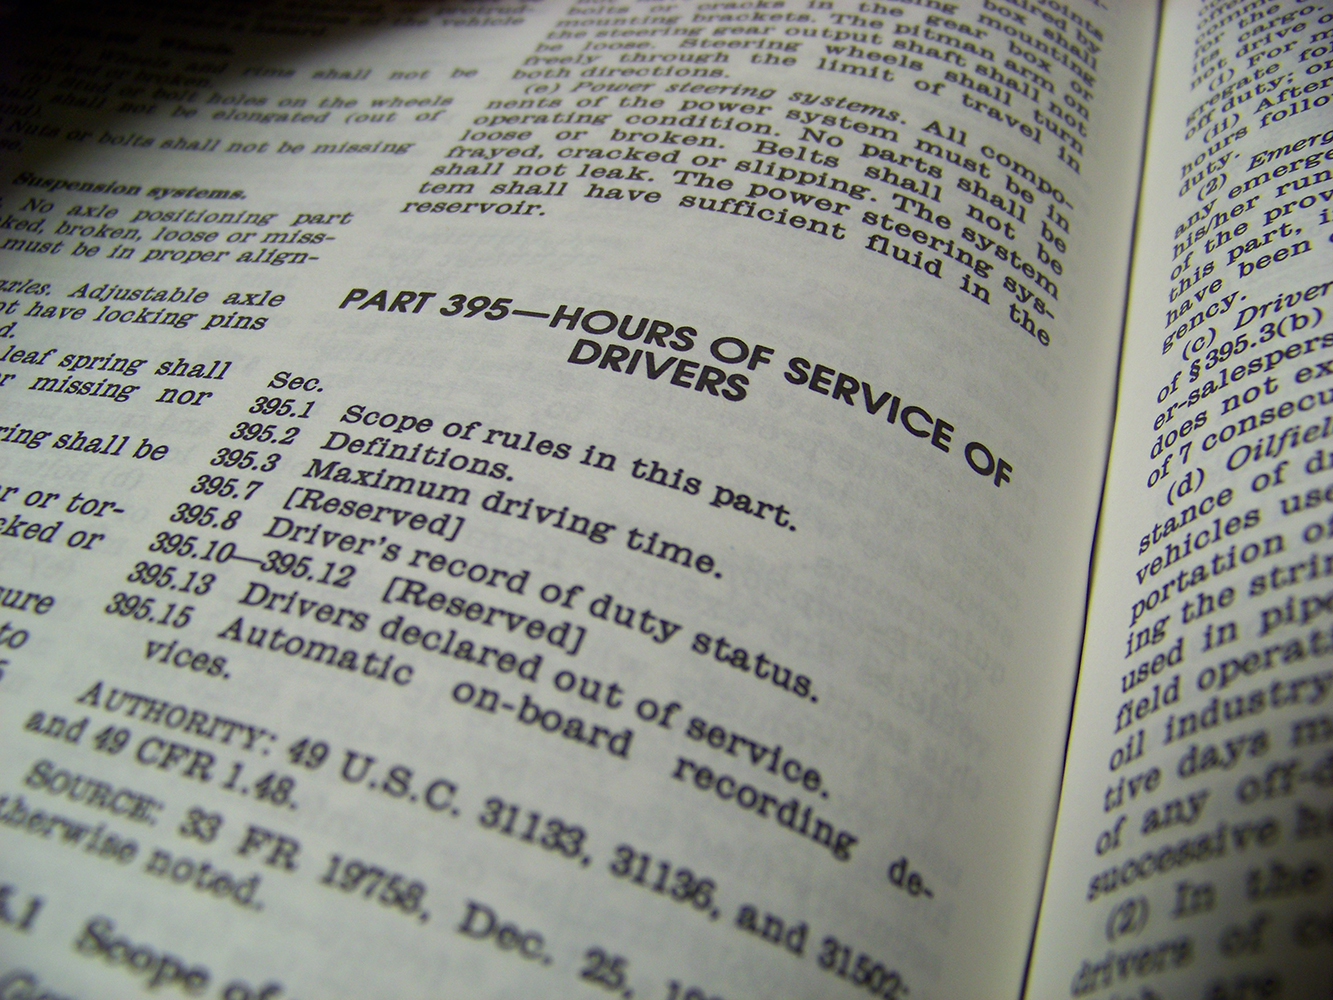 Hours of Service Hot Button Questions, Part 3